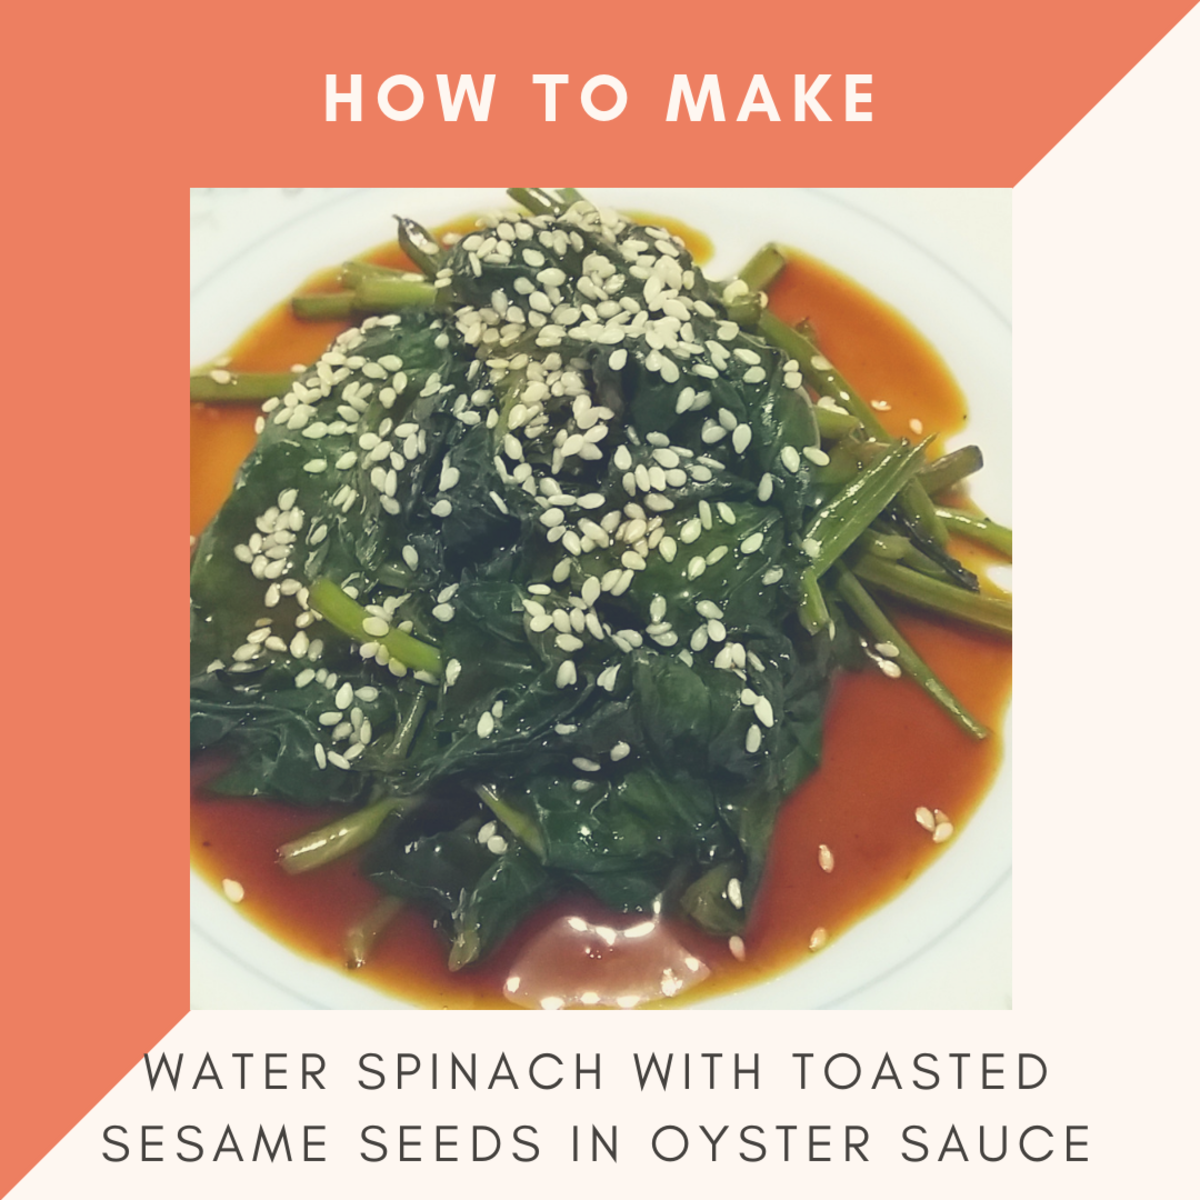 how to make water spinach with toasted sesame seeds in oyster sauce